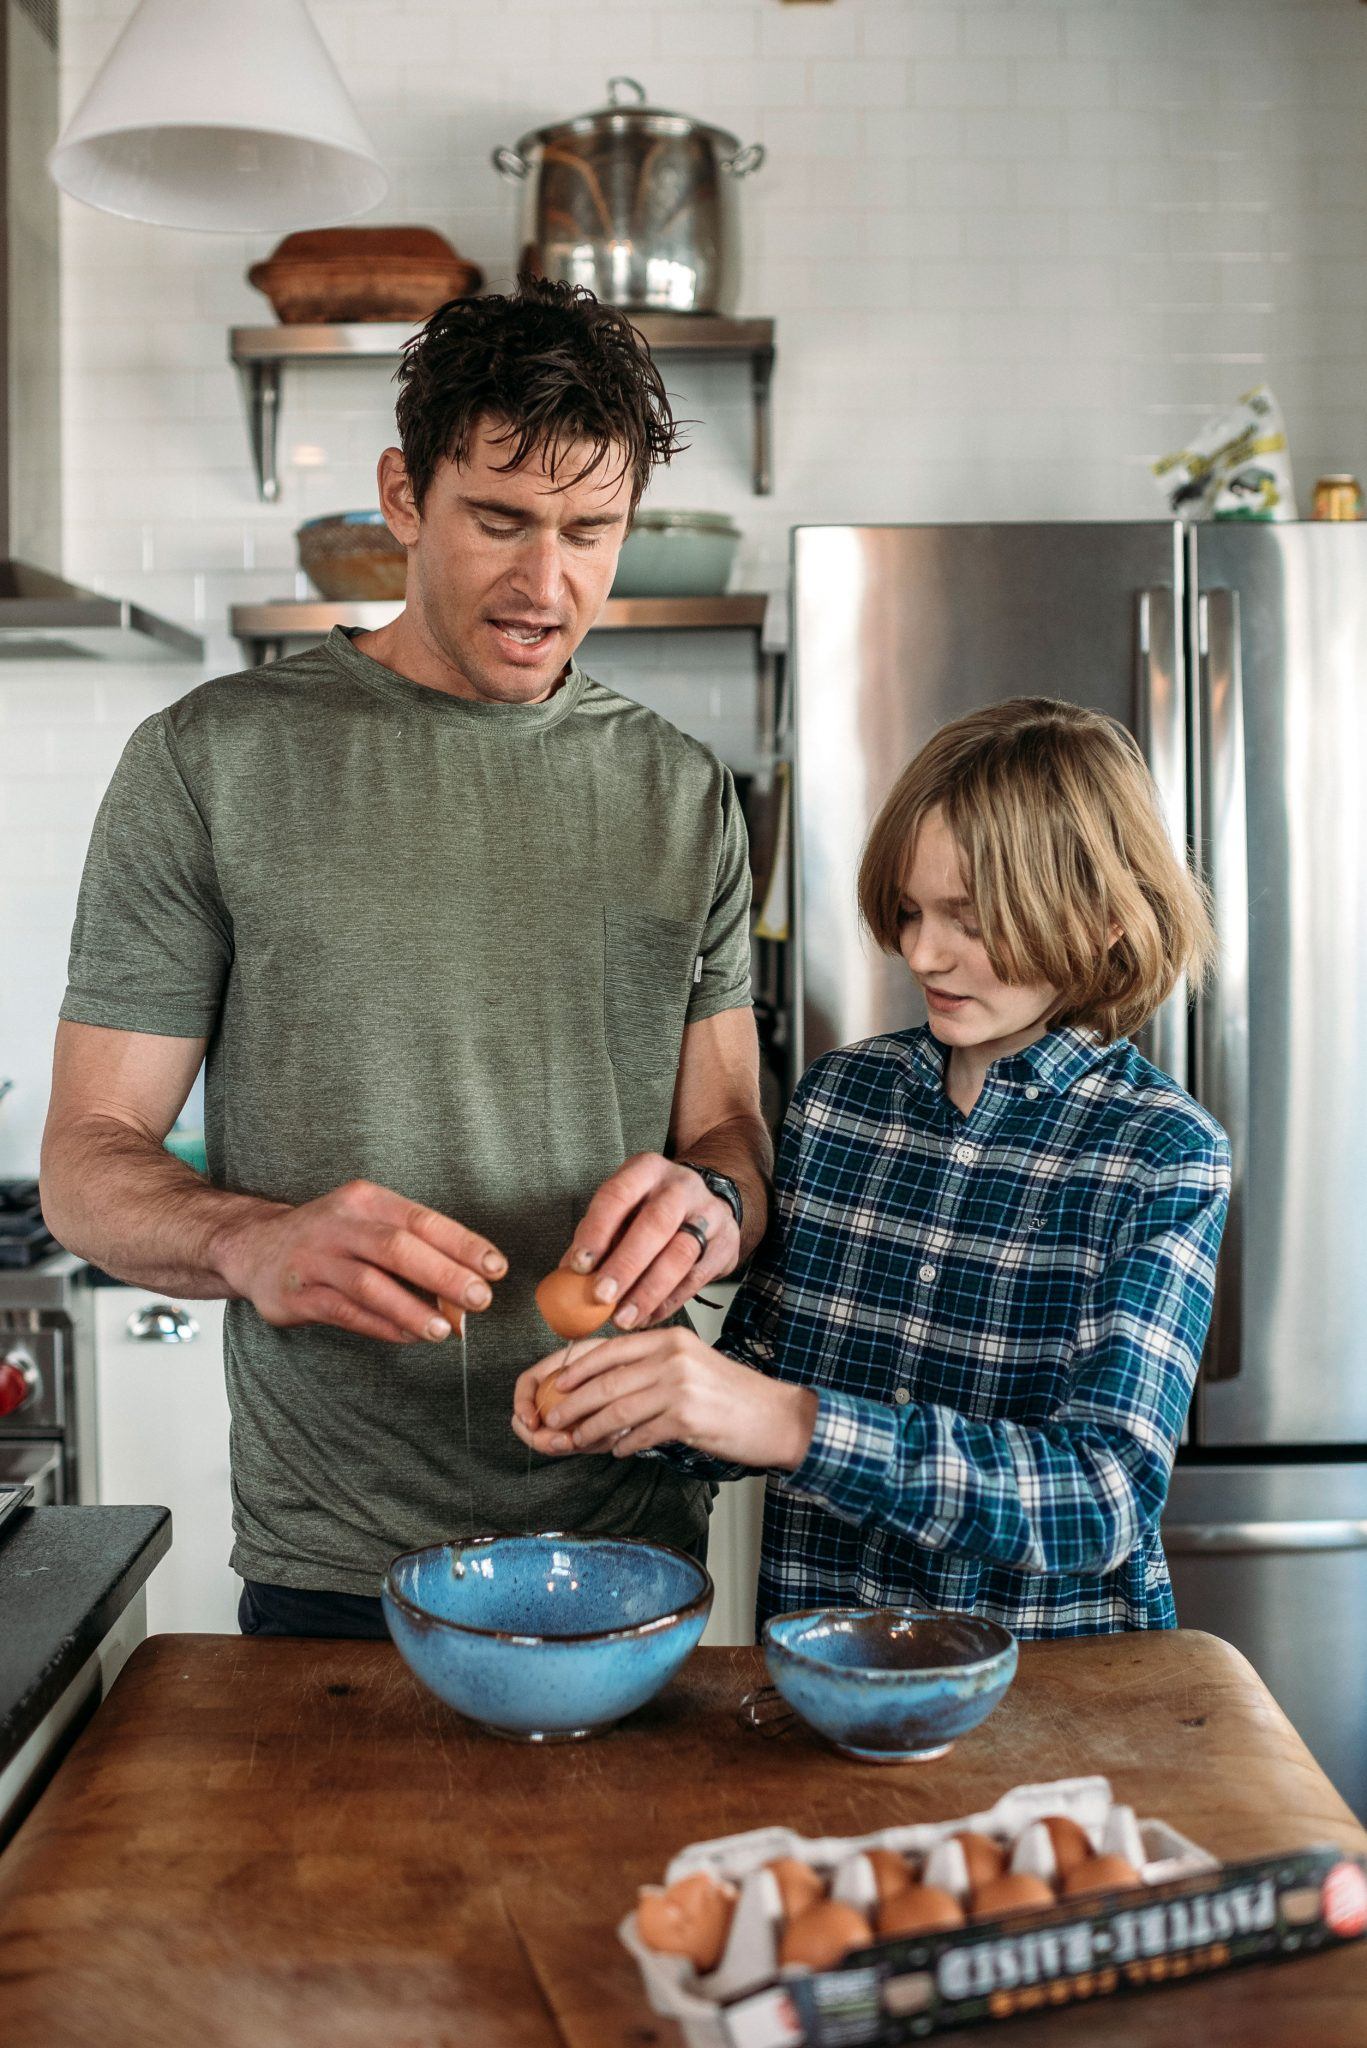 boy and dad cooking Ben Greenfield Spokane Photographer